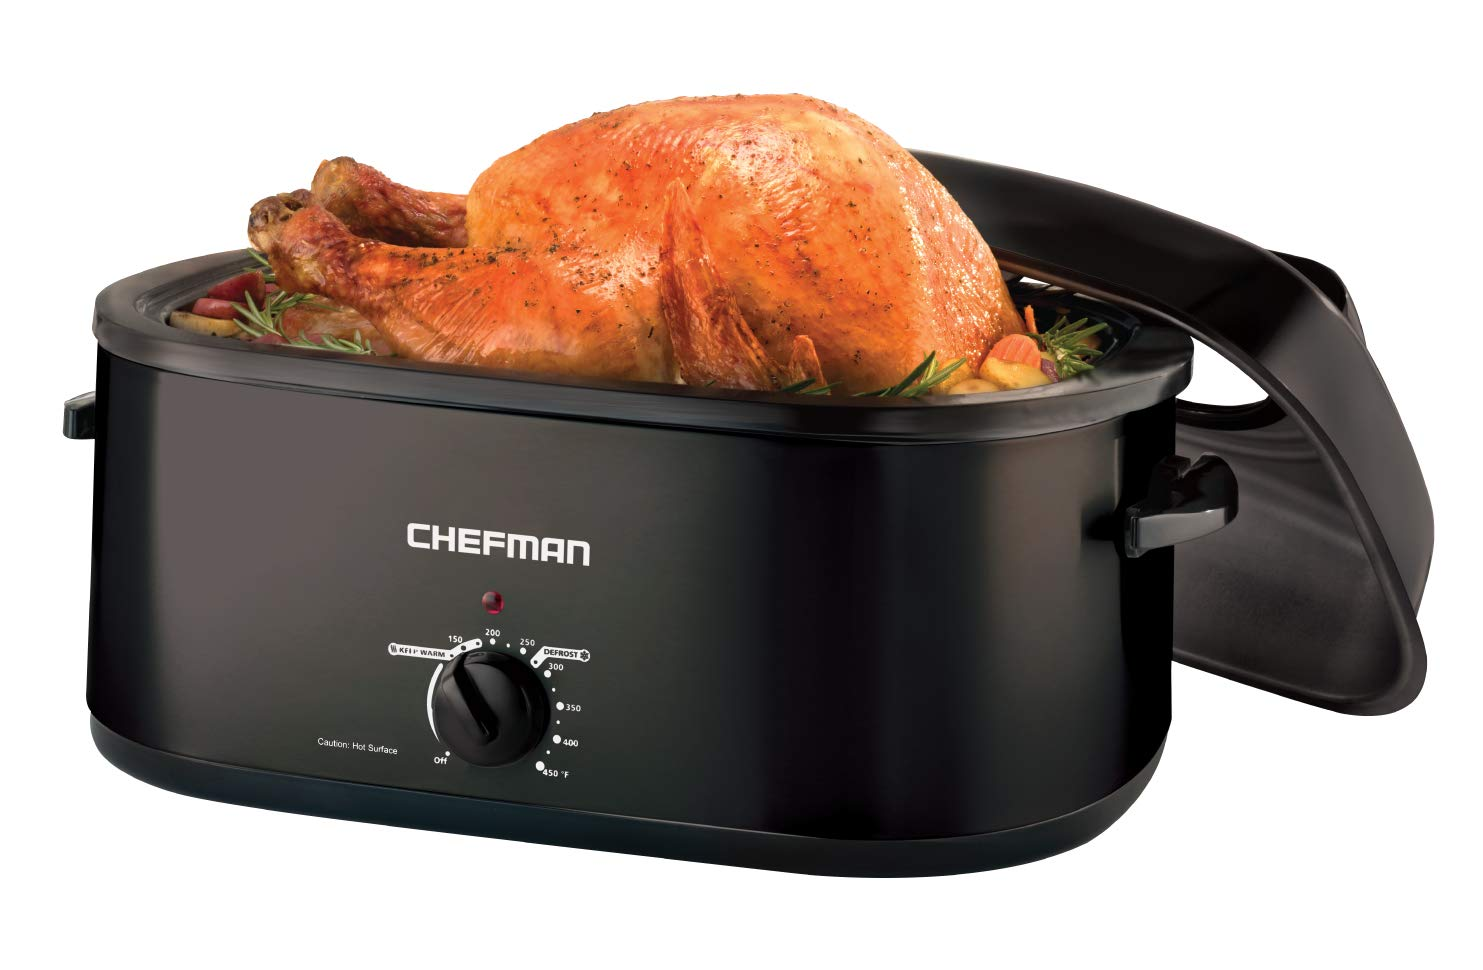 Chefman 20 Quart Roaster Oven Slow Cooker w/Window Viewing Lid Perfect Cooking Roasting, Baking, Serving and More, Family Size, Black (Black)